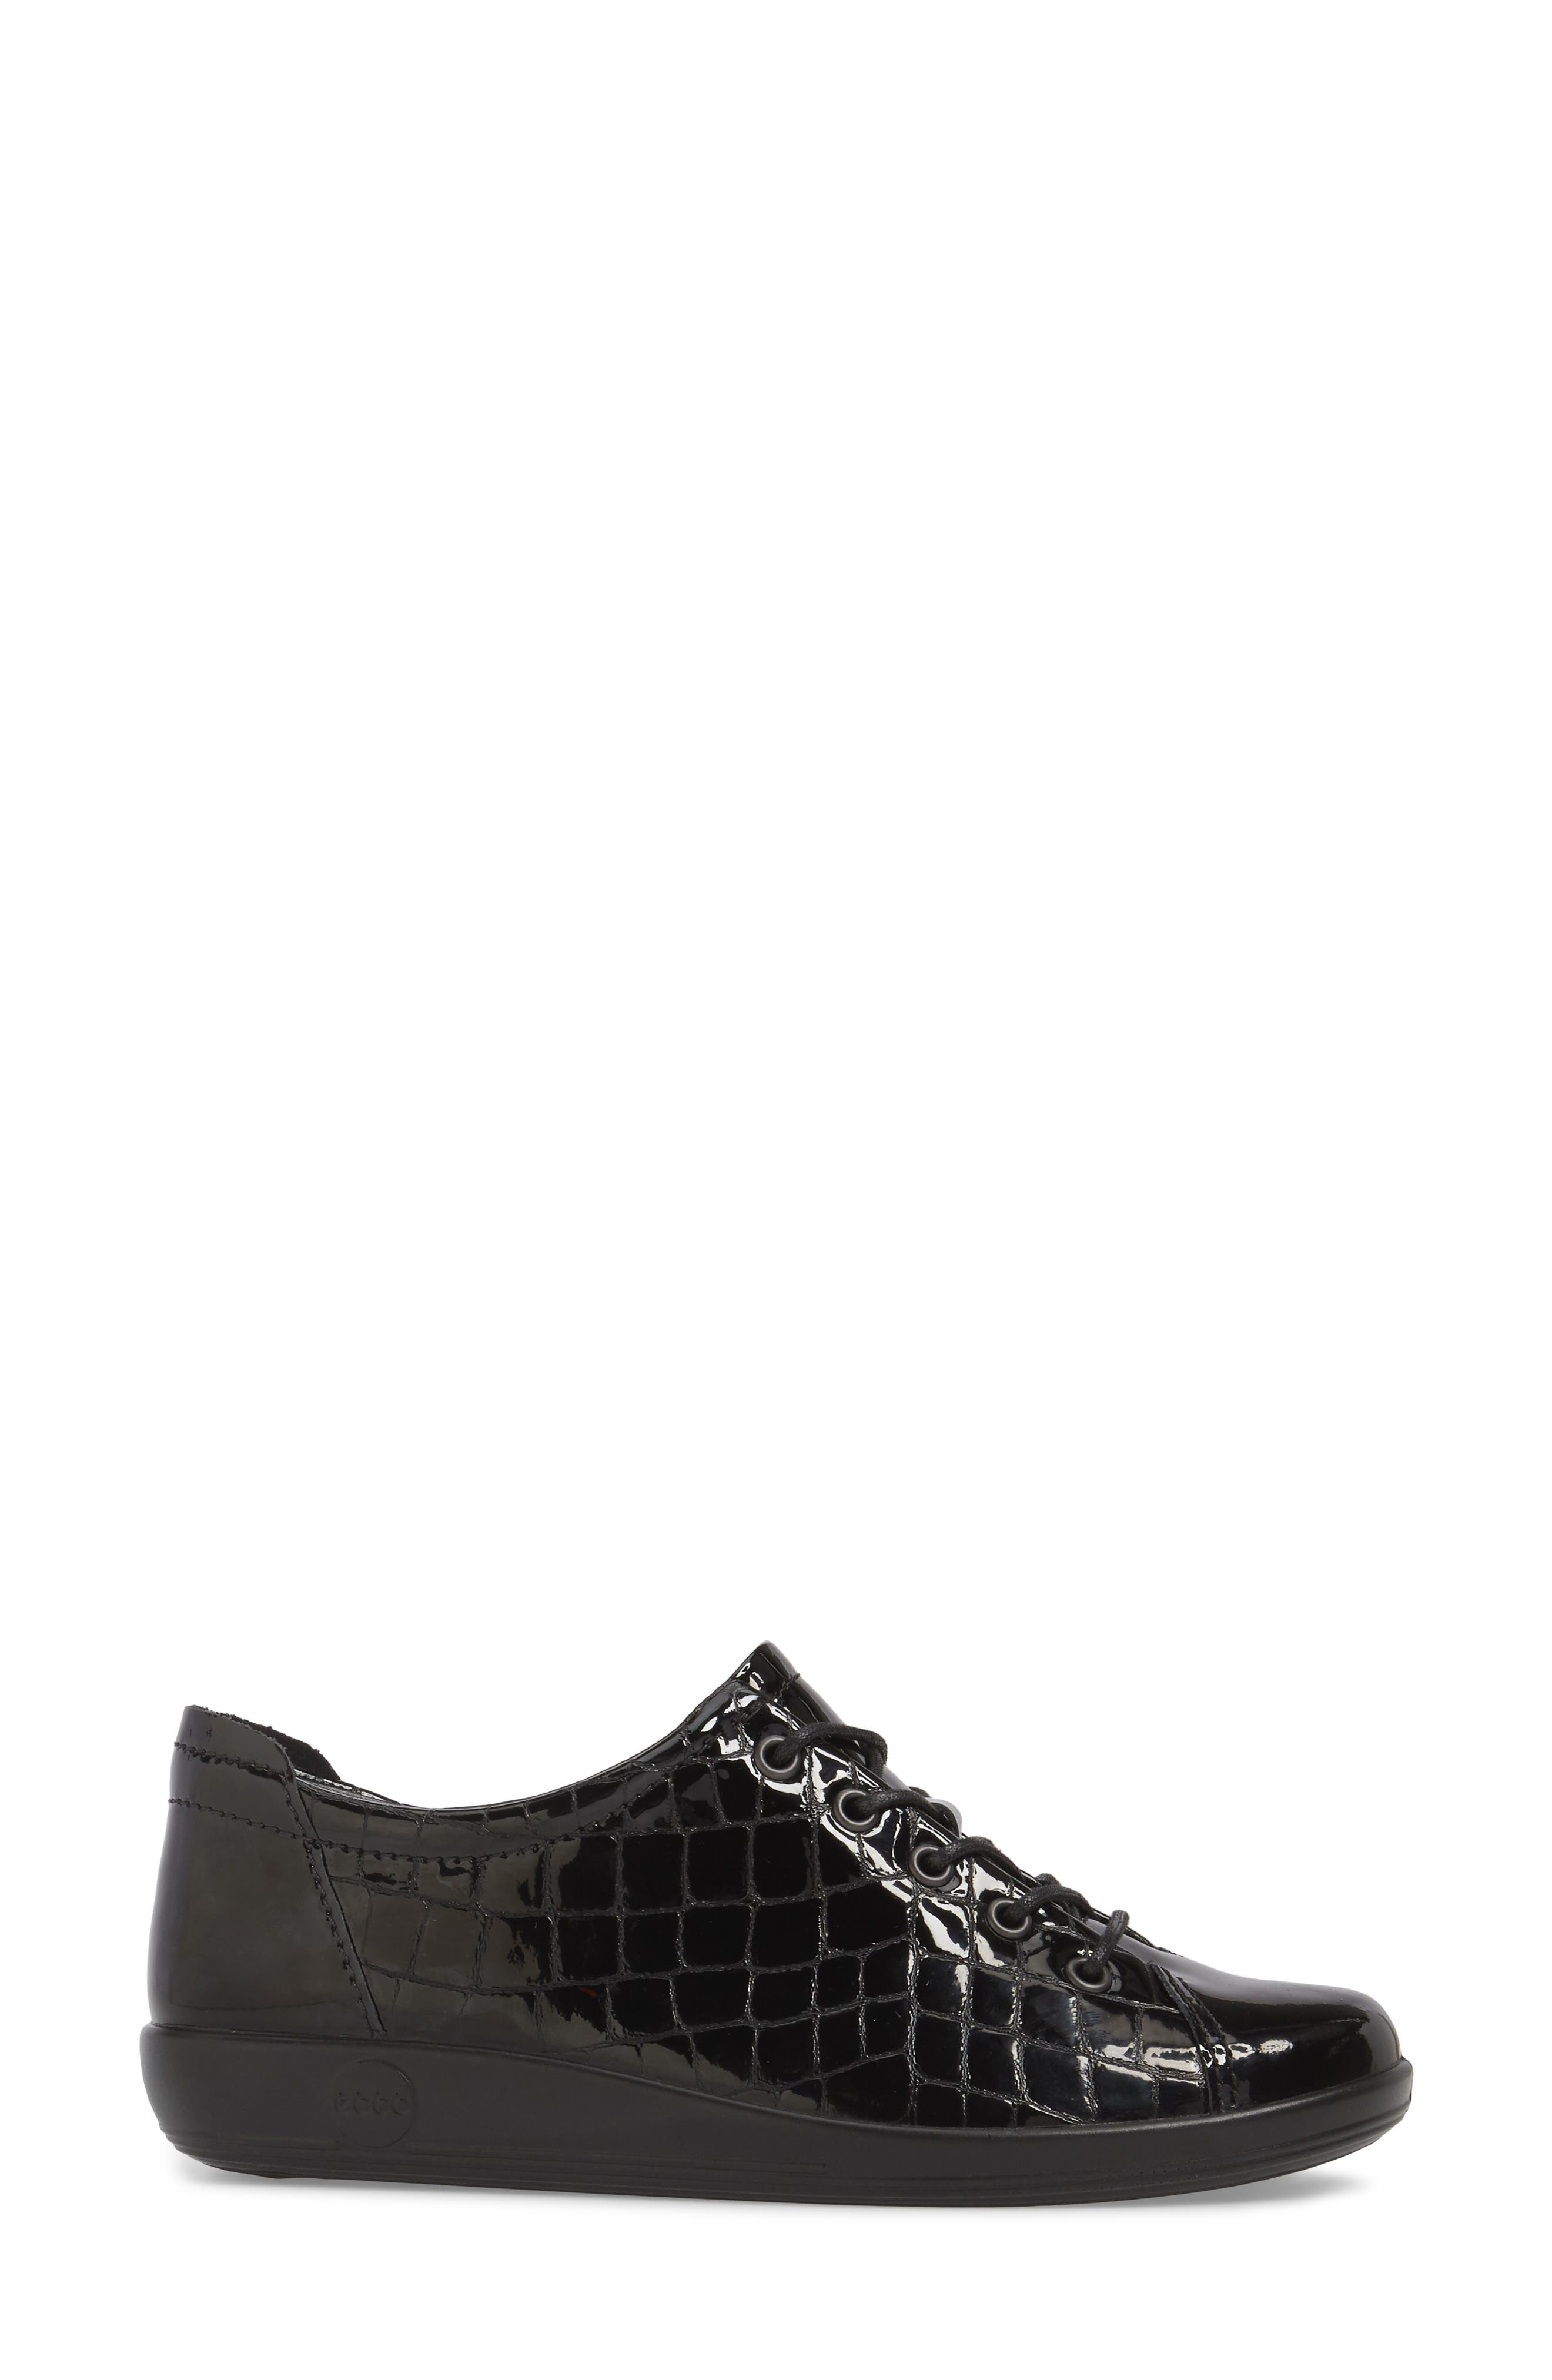 'Soft 2.0' Sneaker,                             Alternate thumbnail 3, color,                             Black Patent Leather